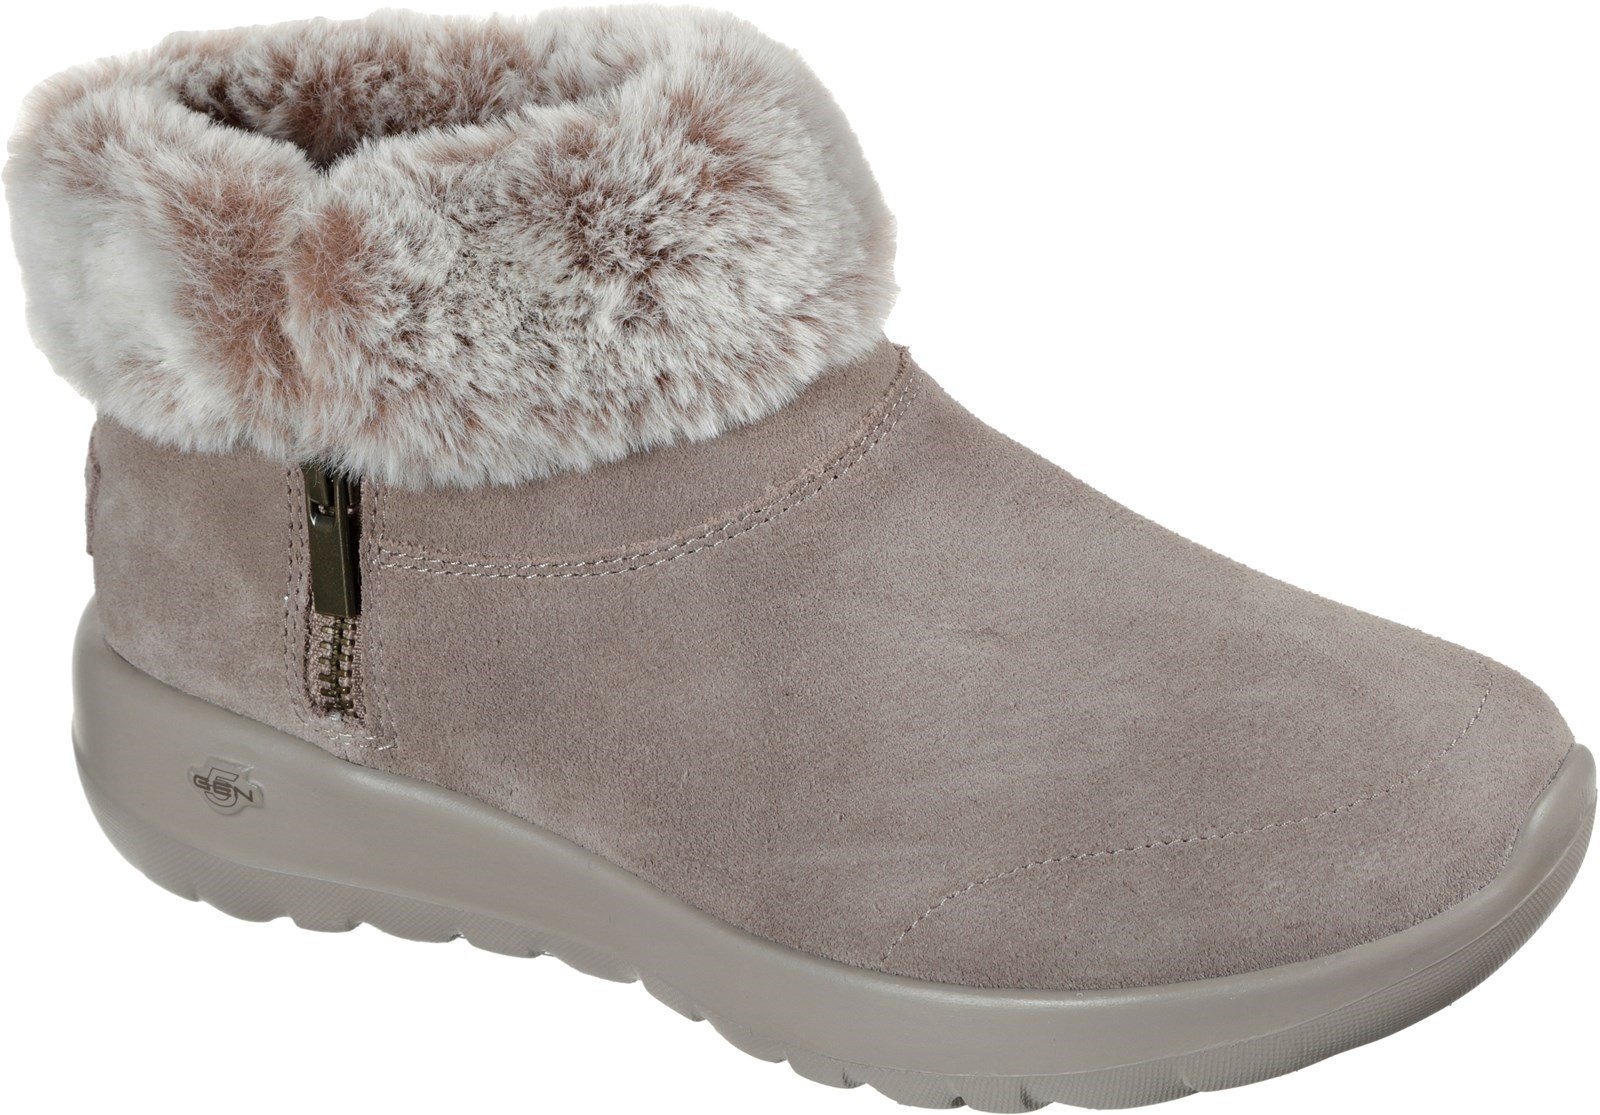 Skechers Women's On-The-Go Joy Savvy Ankle Boot Various Colours 31065 - Dark Taupe 3